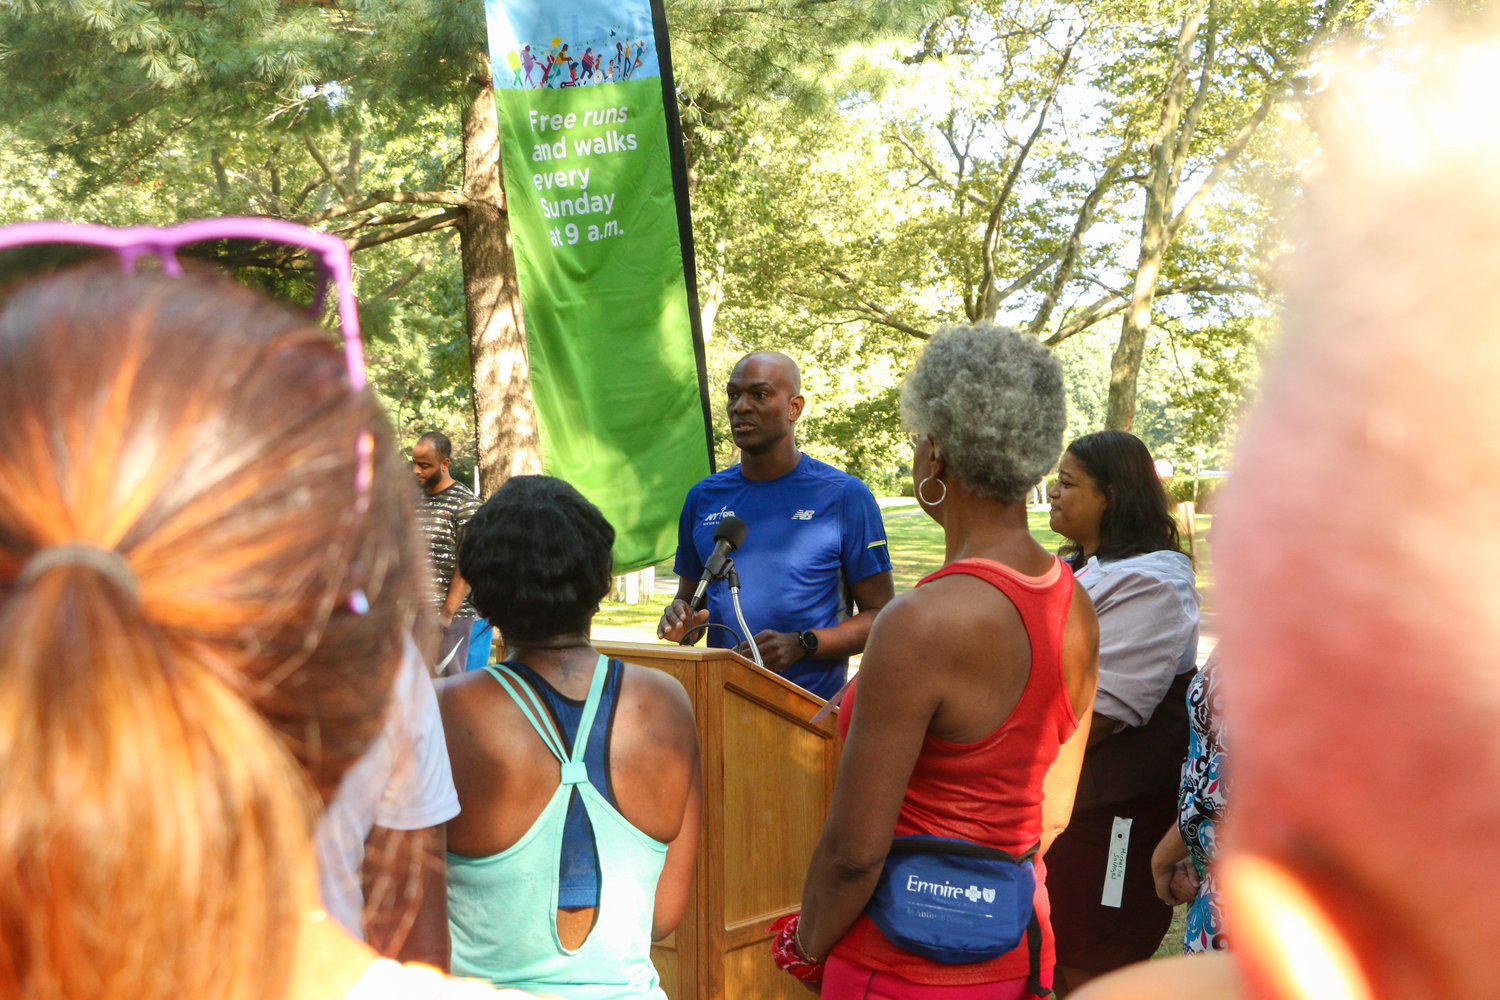 Michael Rodgers, NYRR vice president of young and community runner engagement greeted the crowd.